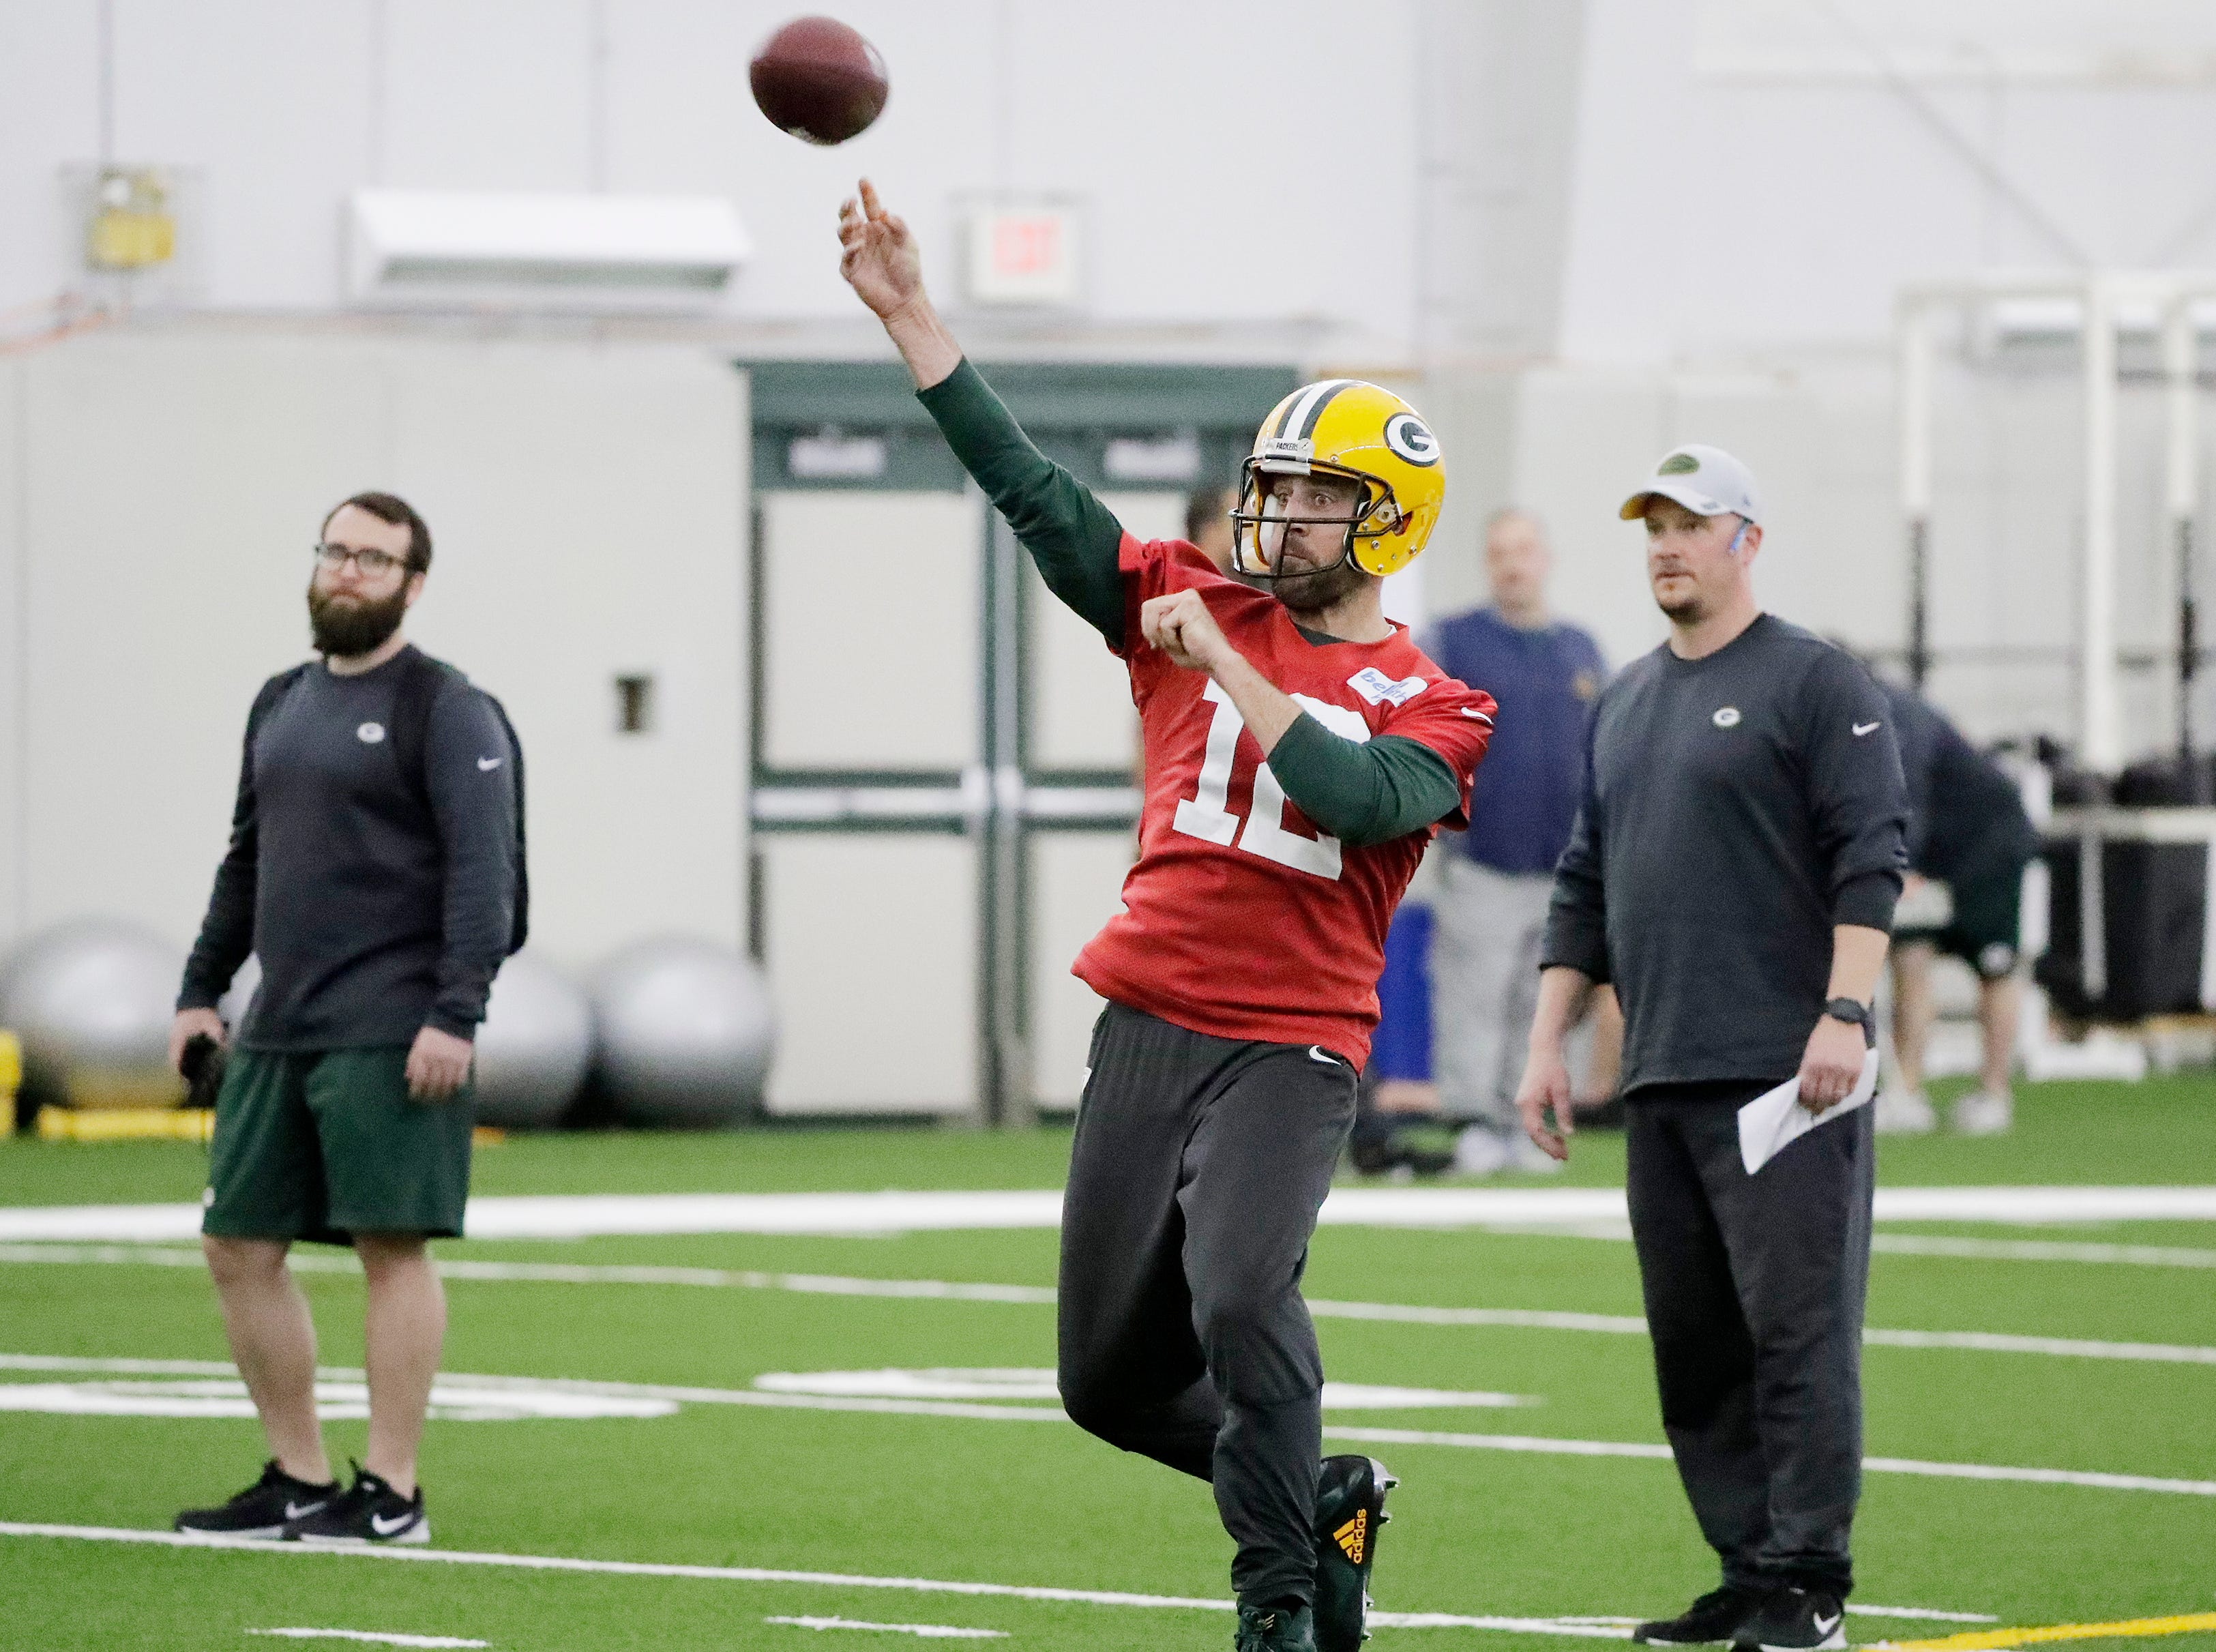 Green Bay Packers quarterback Aaron Rodgers (12) throws during a team practice at the Don Hutson Center on Wednesday, April 24, 2019 in Ashwaubenon, Wis.